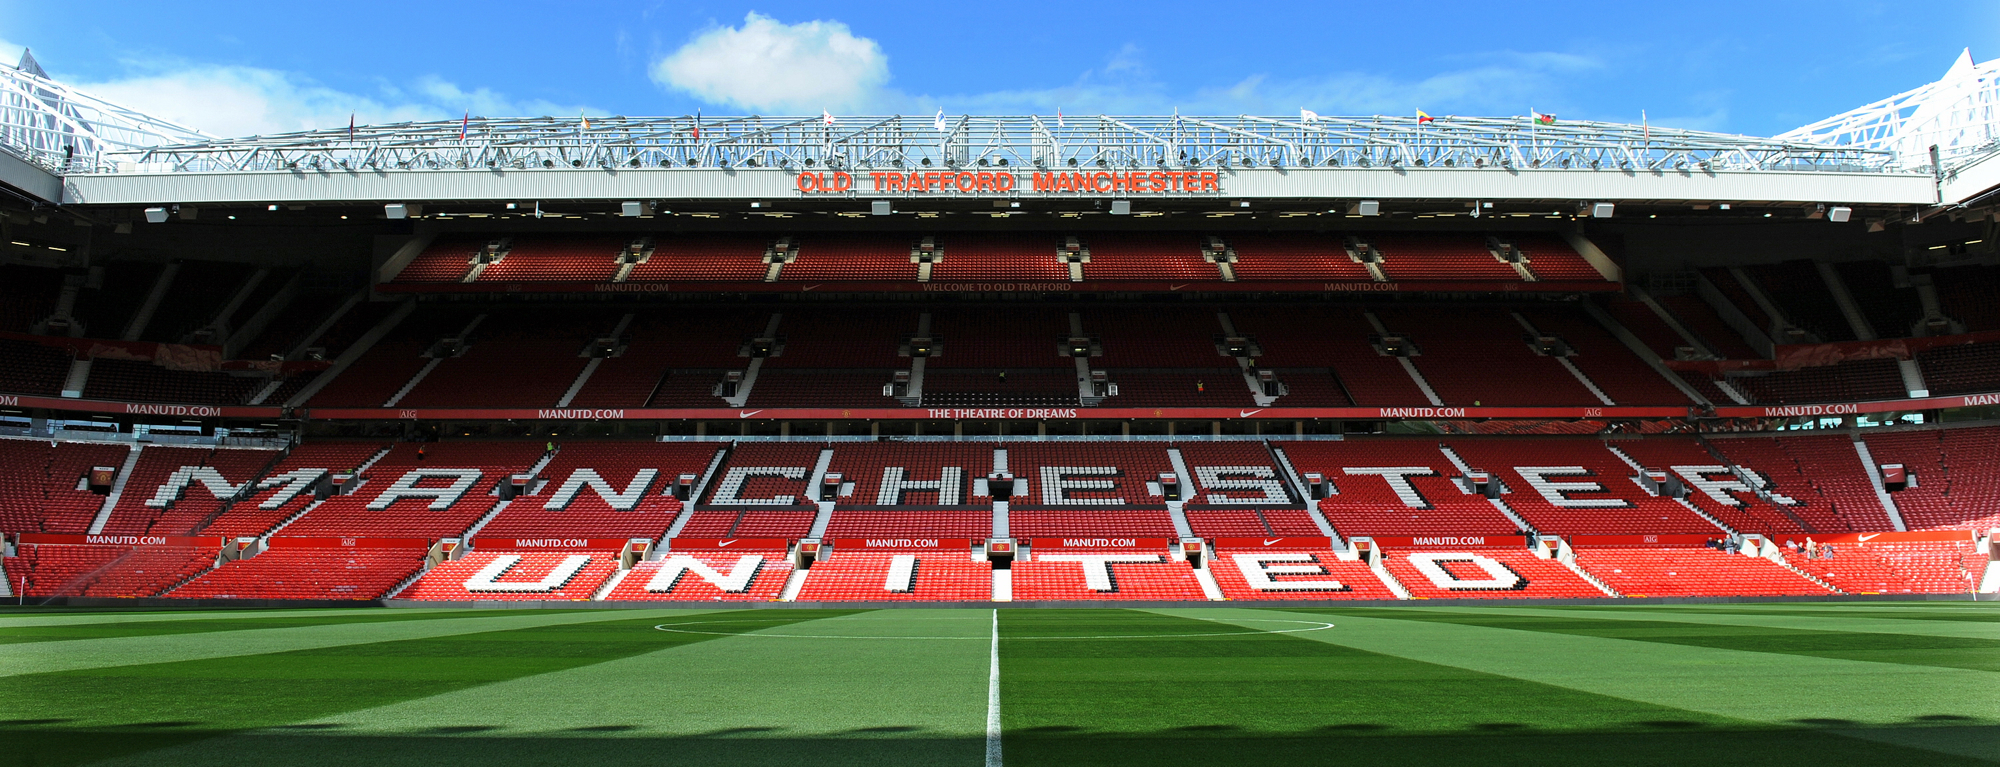 Manchester United Bans Ipads From Games At Old Trafford